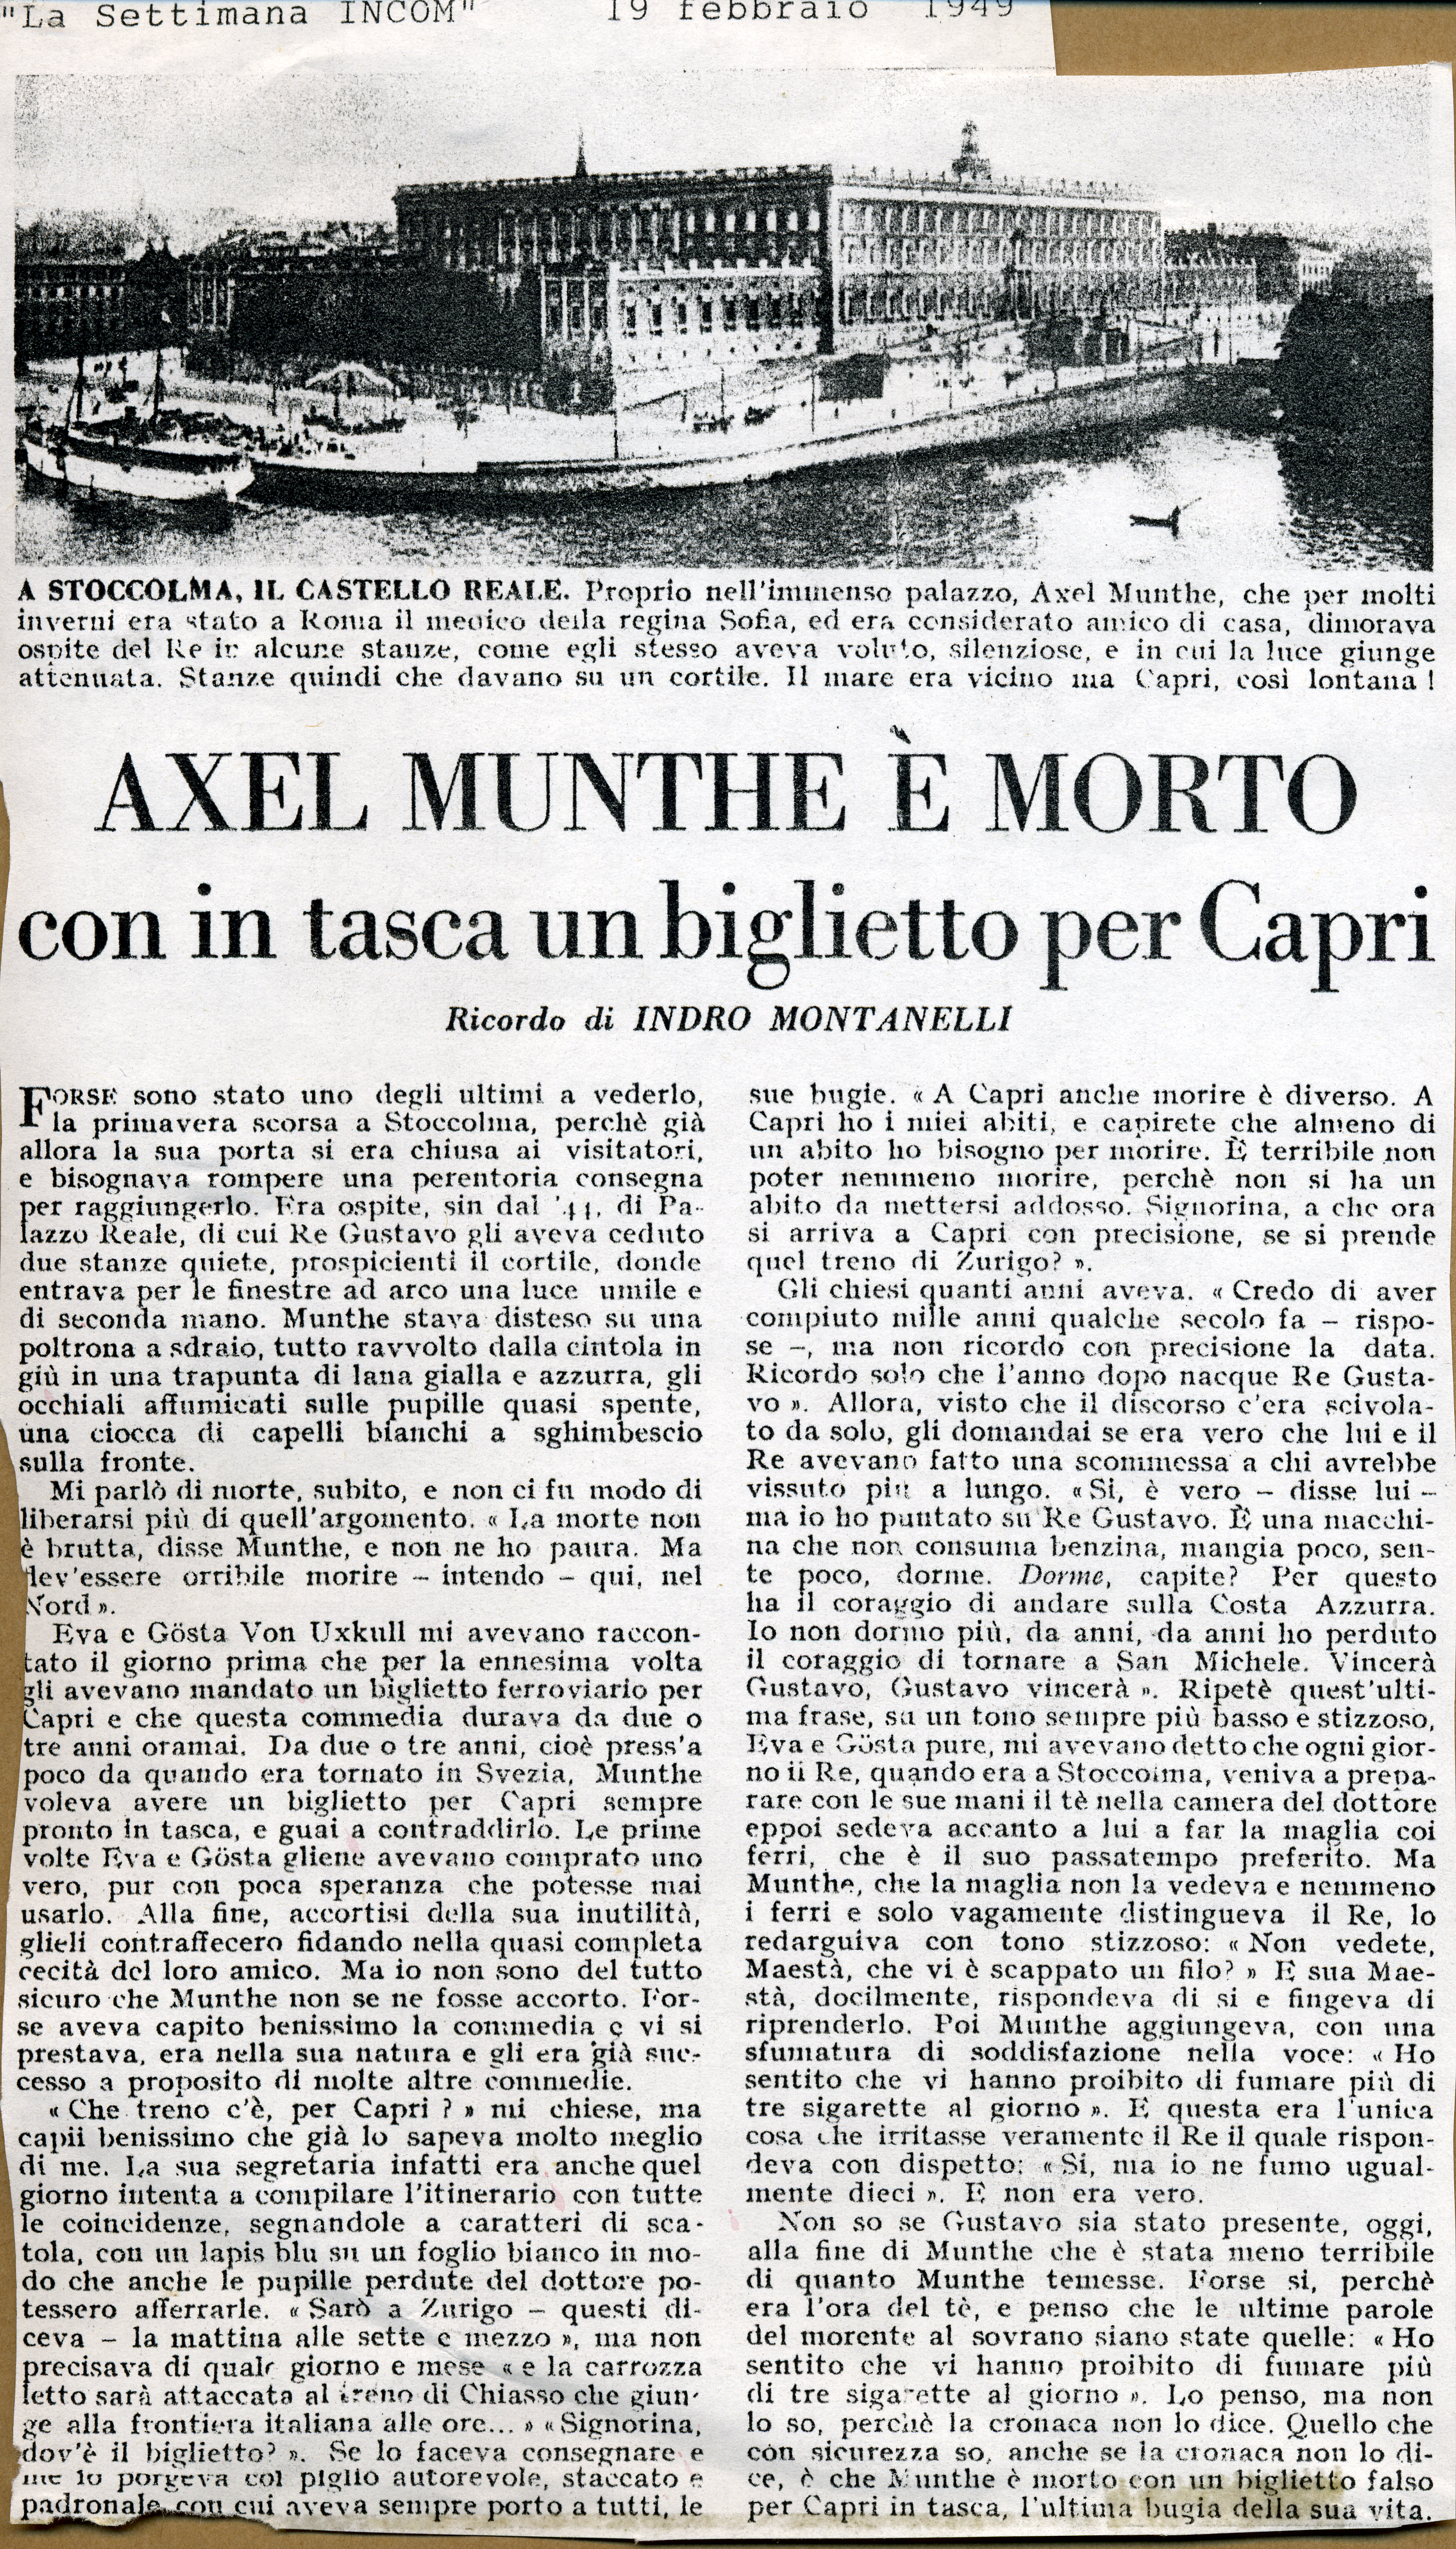 The article announcing Munthe's death by the famous Italian journalist Indro Montanelli